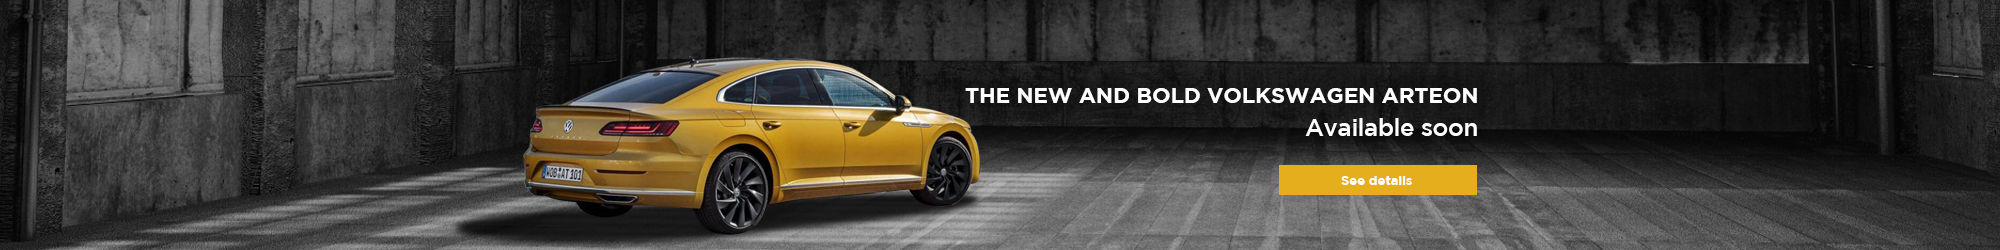 Volkswagen Arteon soon available